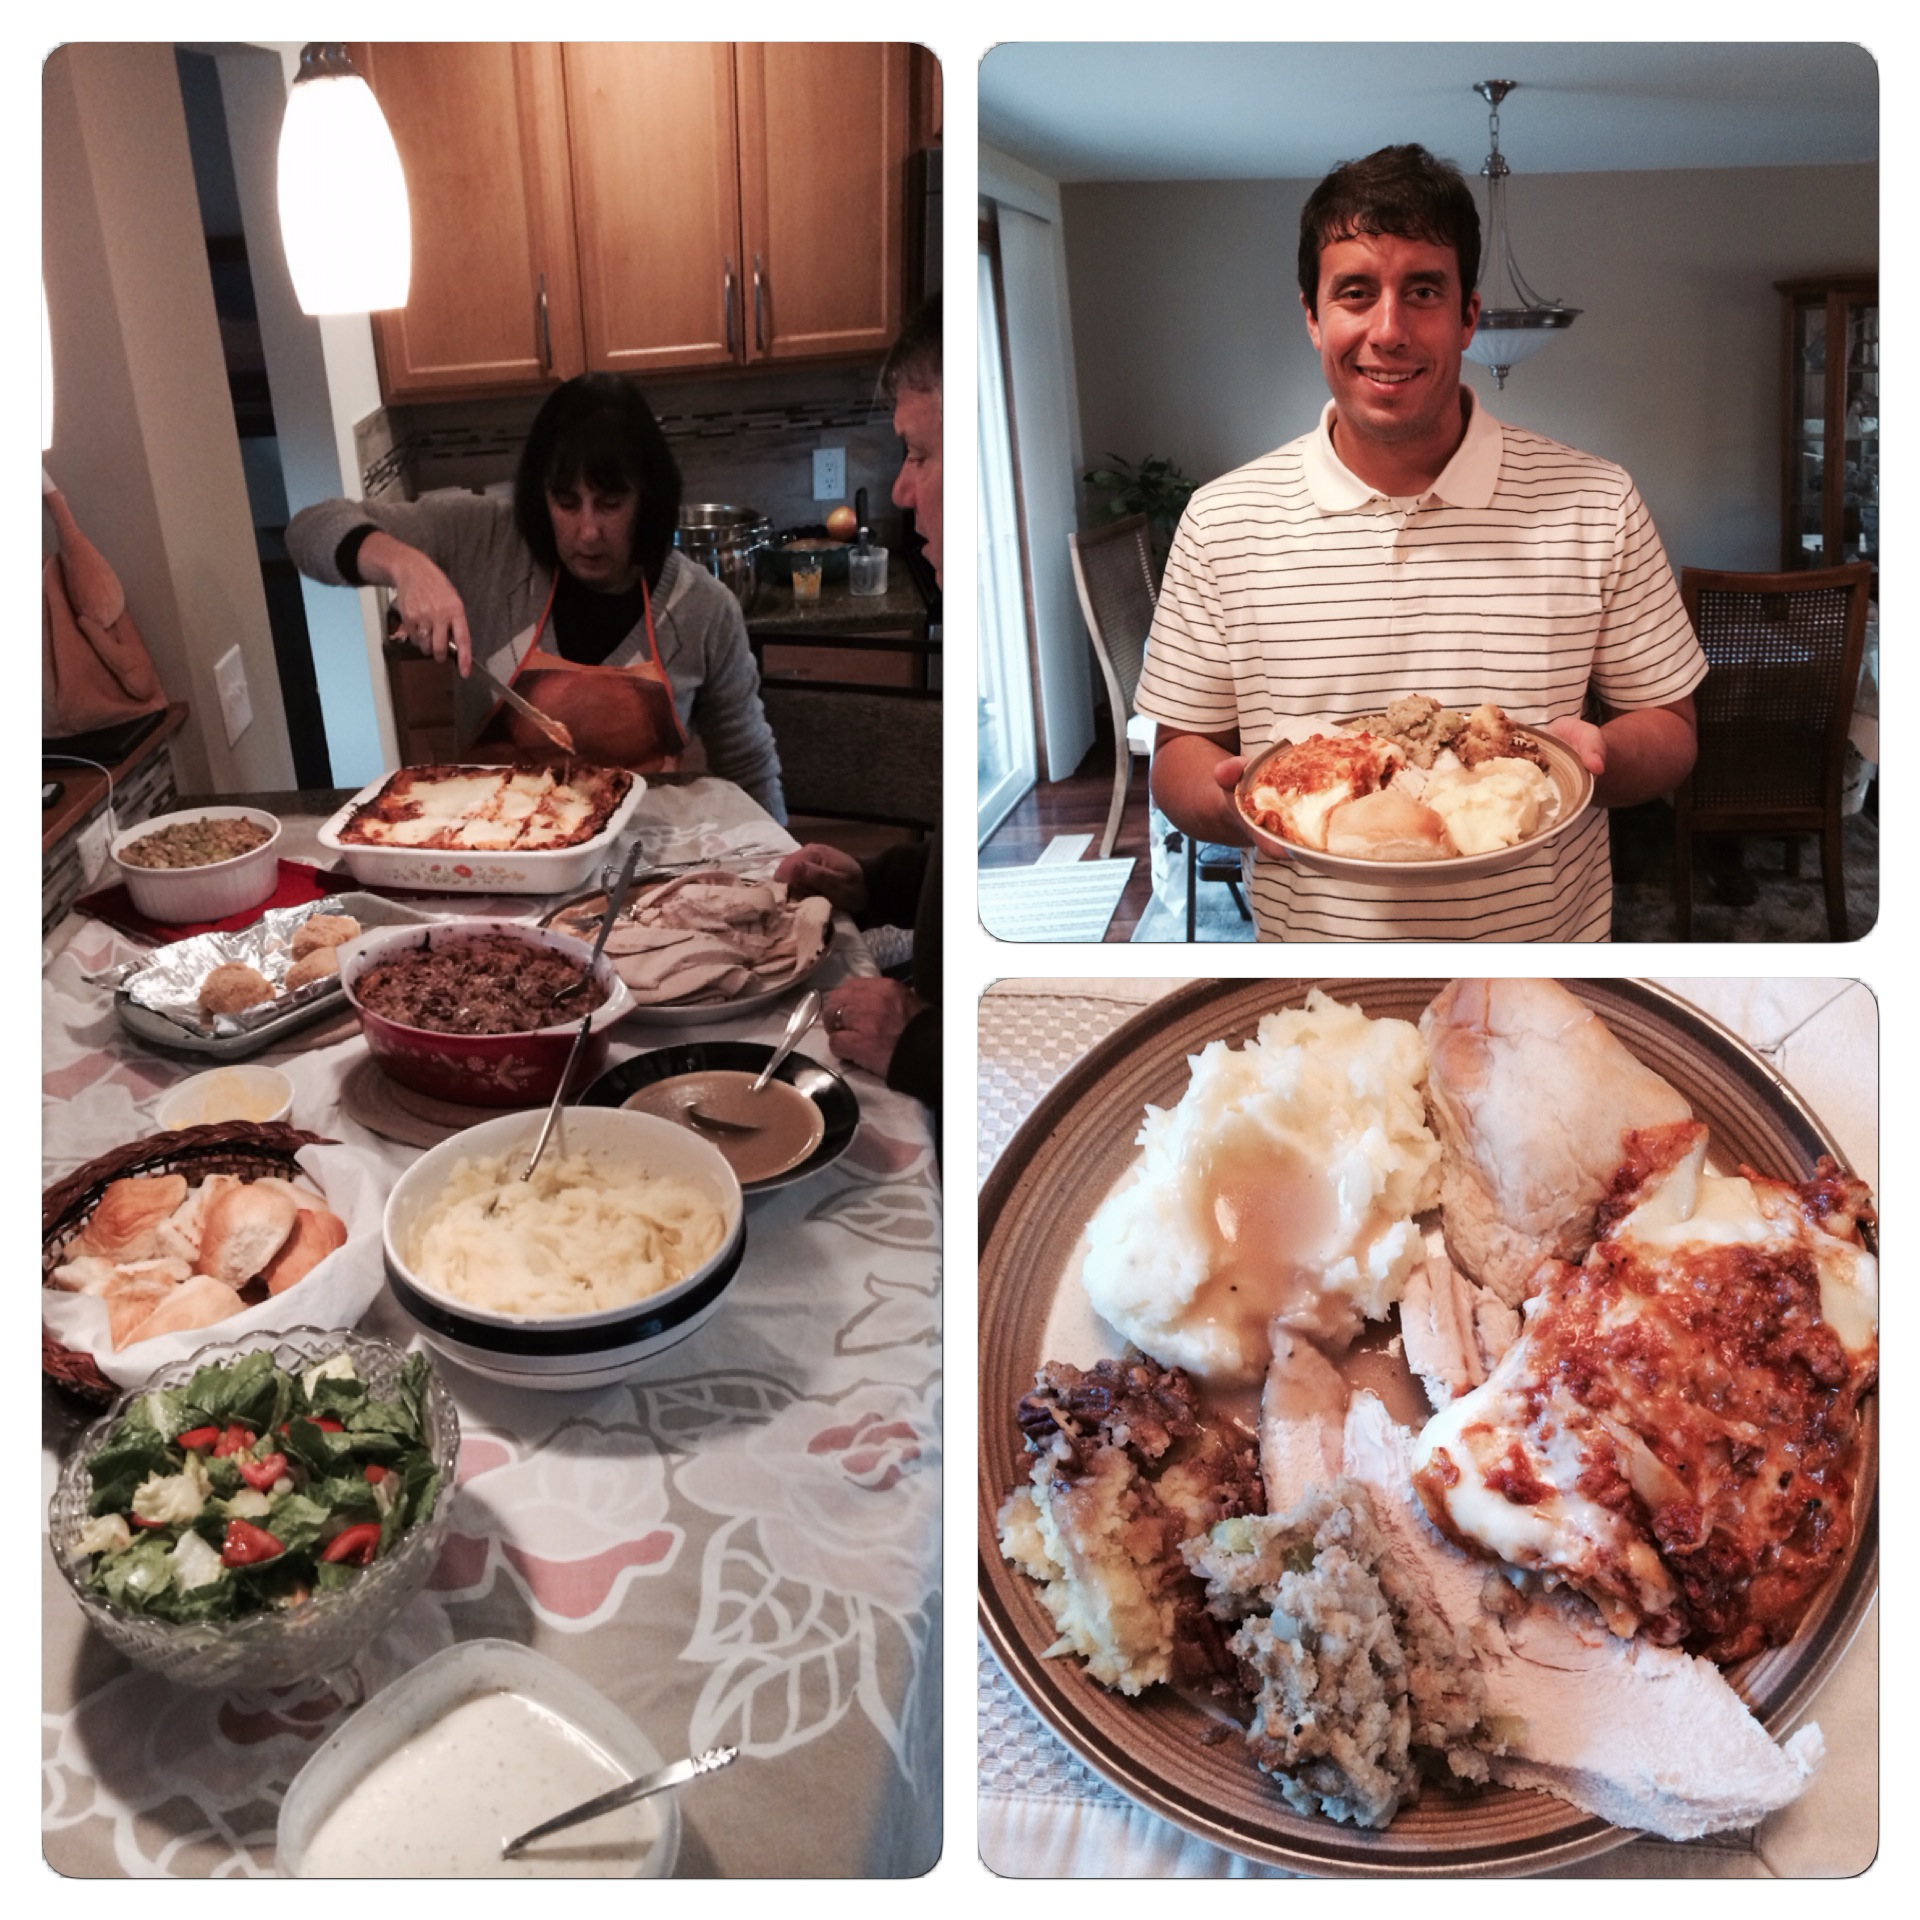 Some photos from our Thanksgiving last year. You can see my mom cutting up our signature lasagna.